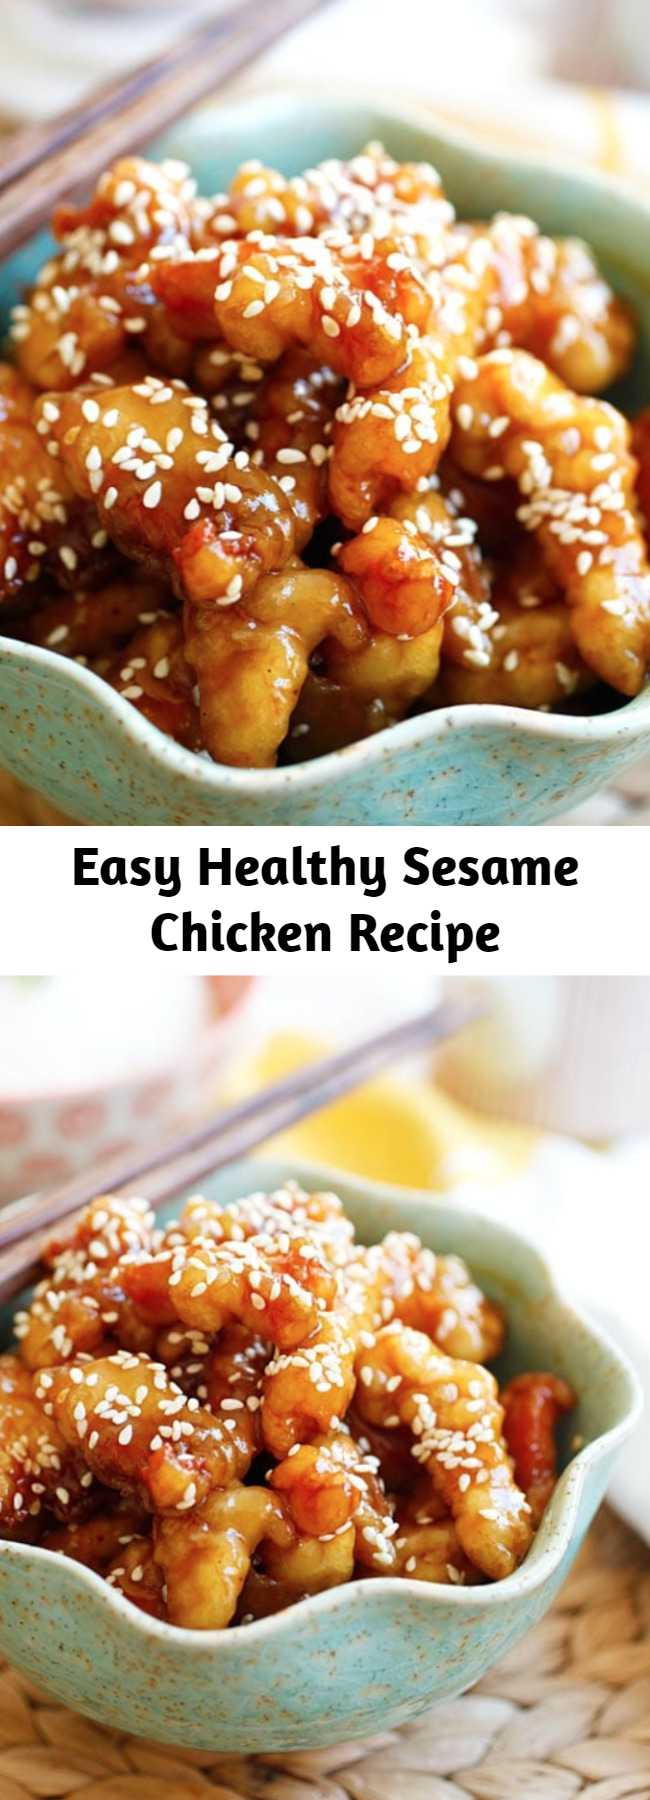 Easy Healthy Sesame Chicken Recipe - This is the best Sesame Chicken recipe with crispy chicken in sweet and savory sesame chicken sauce. It tastes just like Chinese restaurants and takes only 20 mins to make. Serve the chicken with steamed rice for an authentic homemade Chinese meal. #chinesefood #chicken